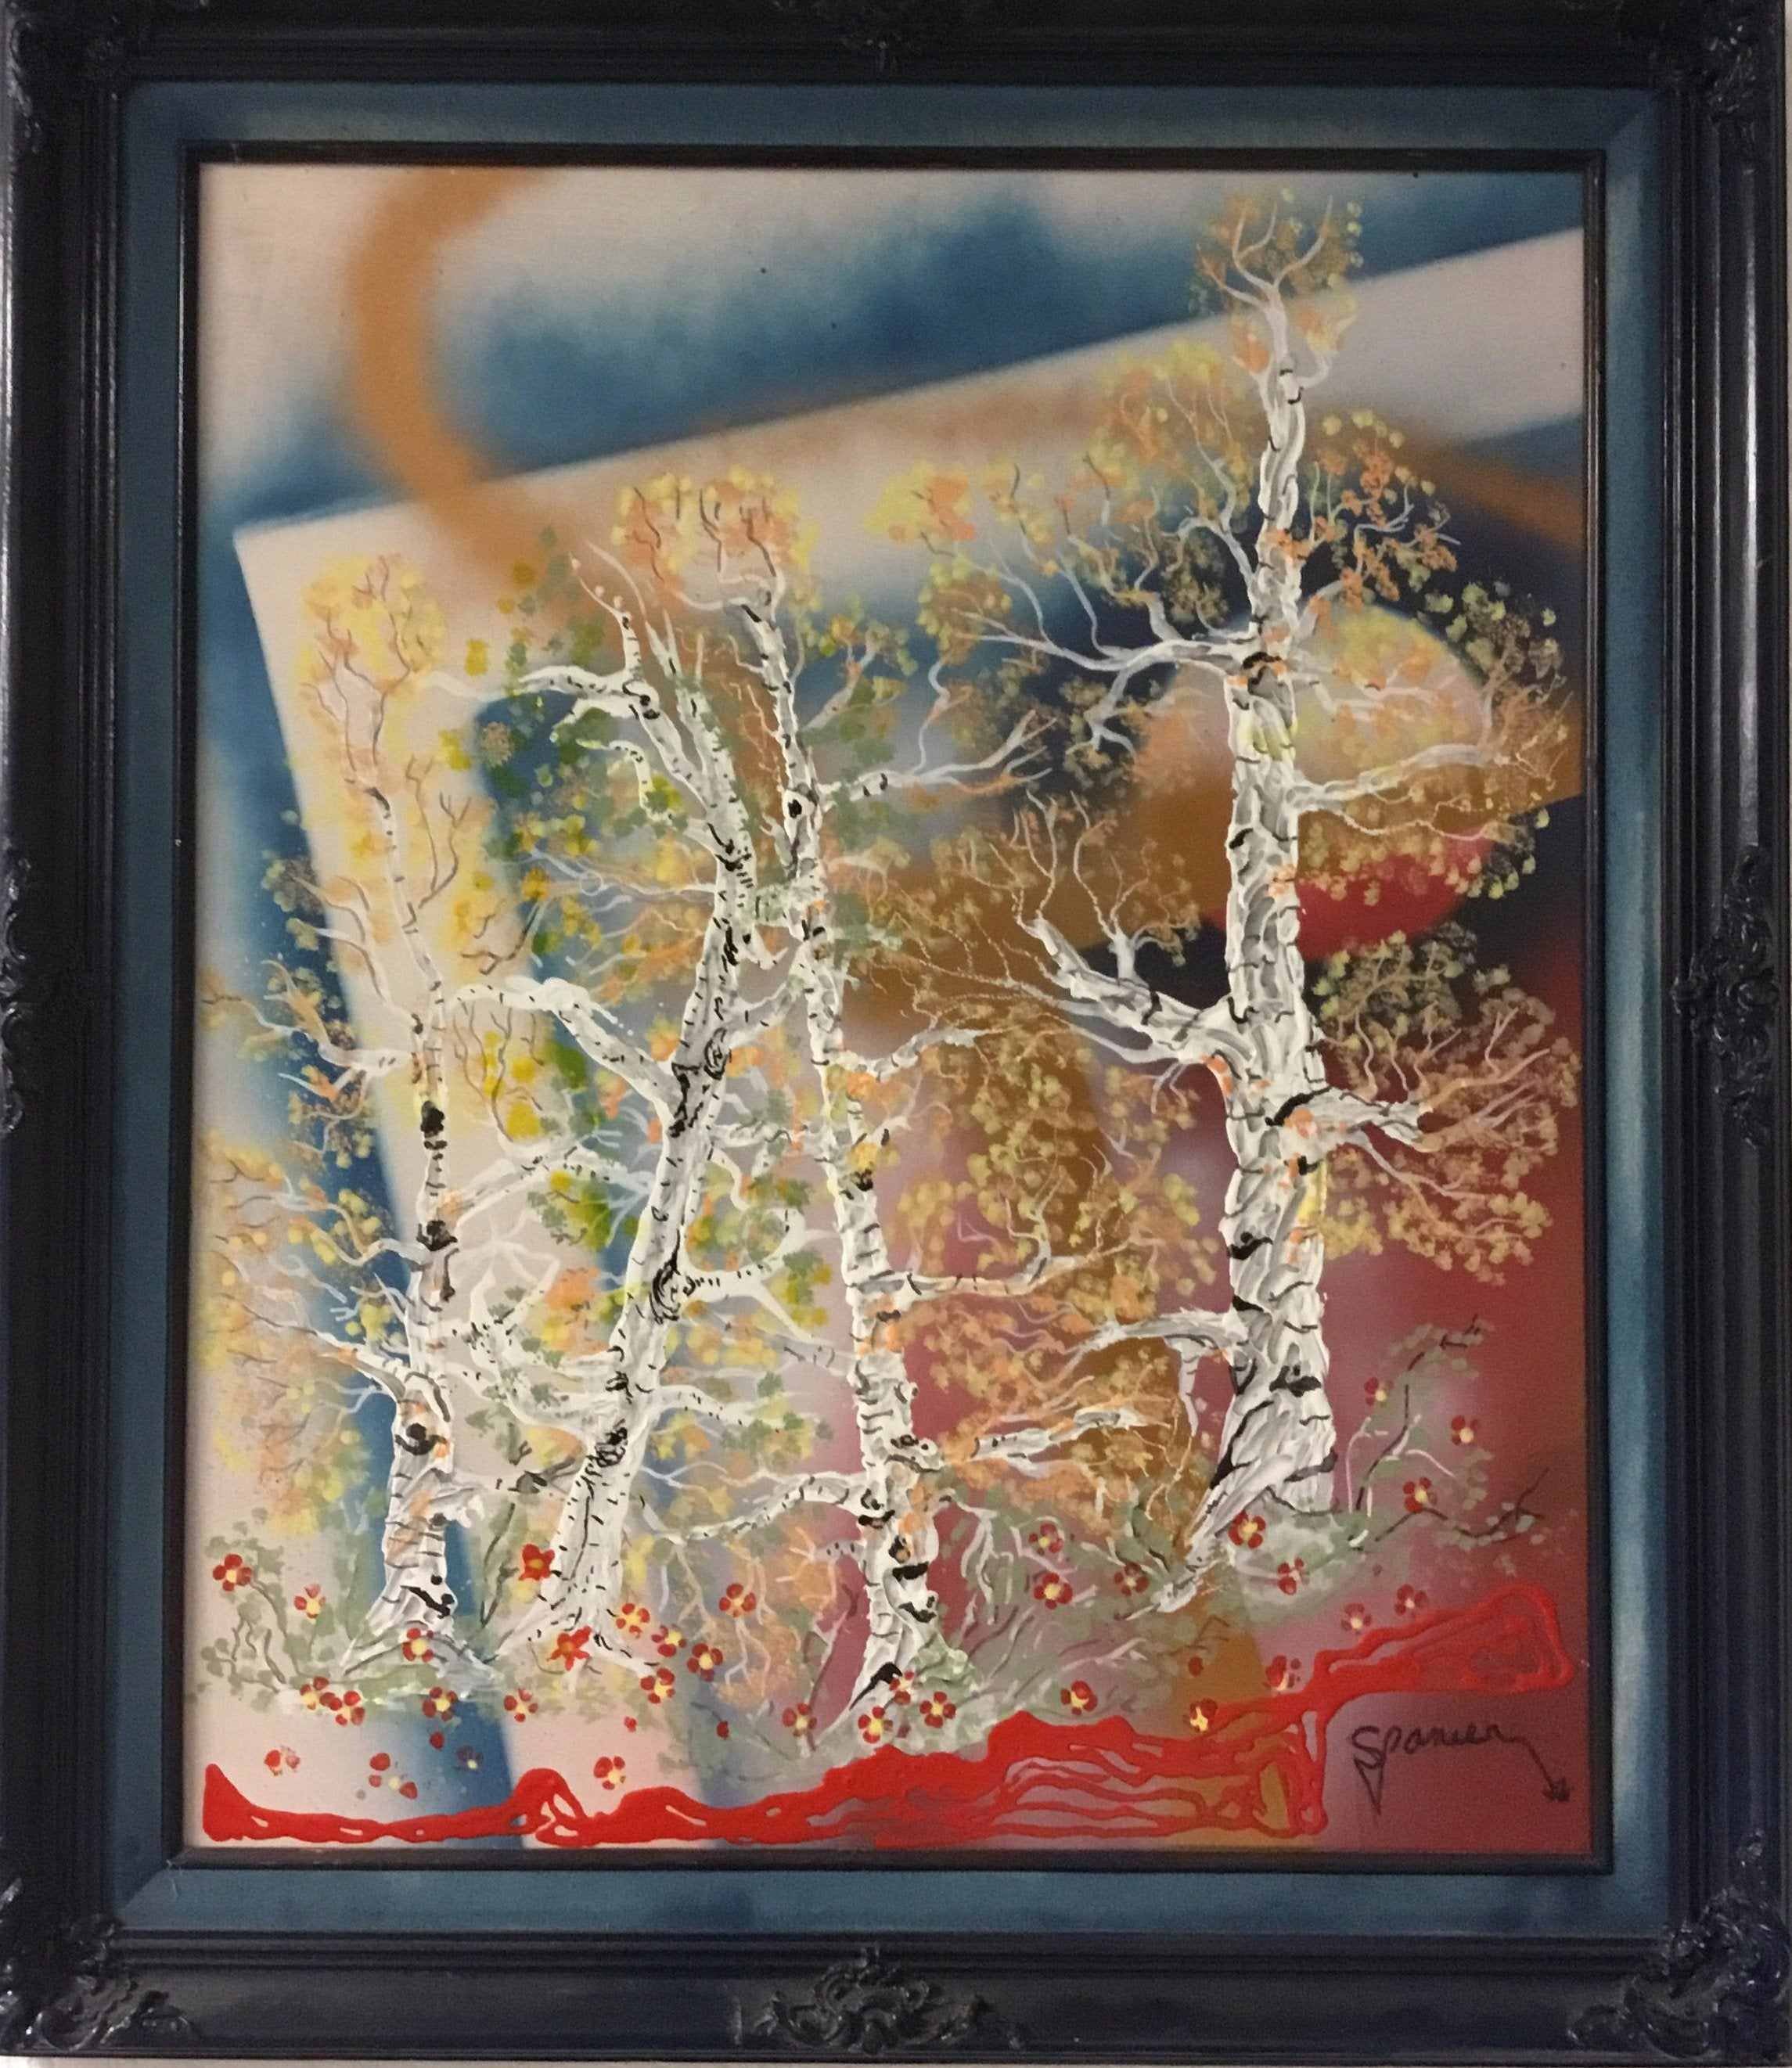 """Aspens in Abstraction II"" - Phil Spanier"